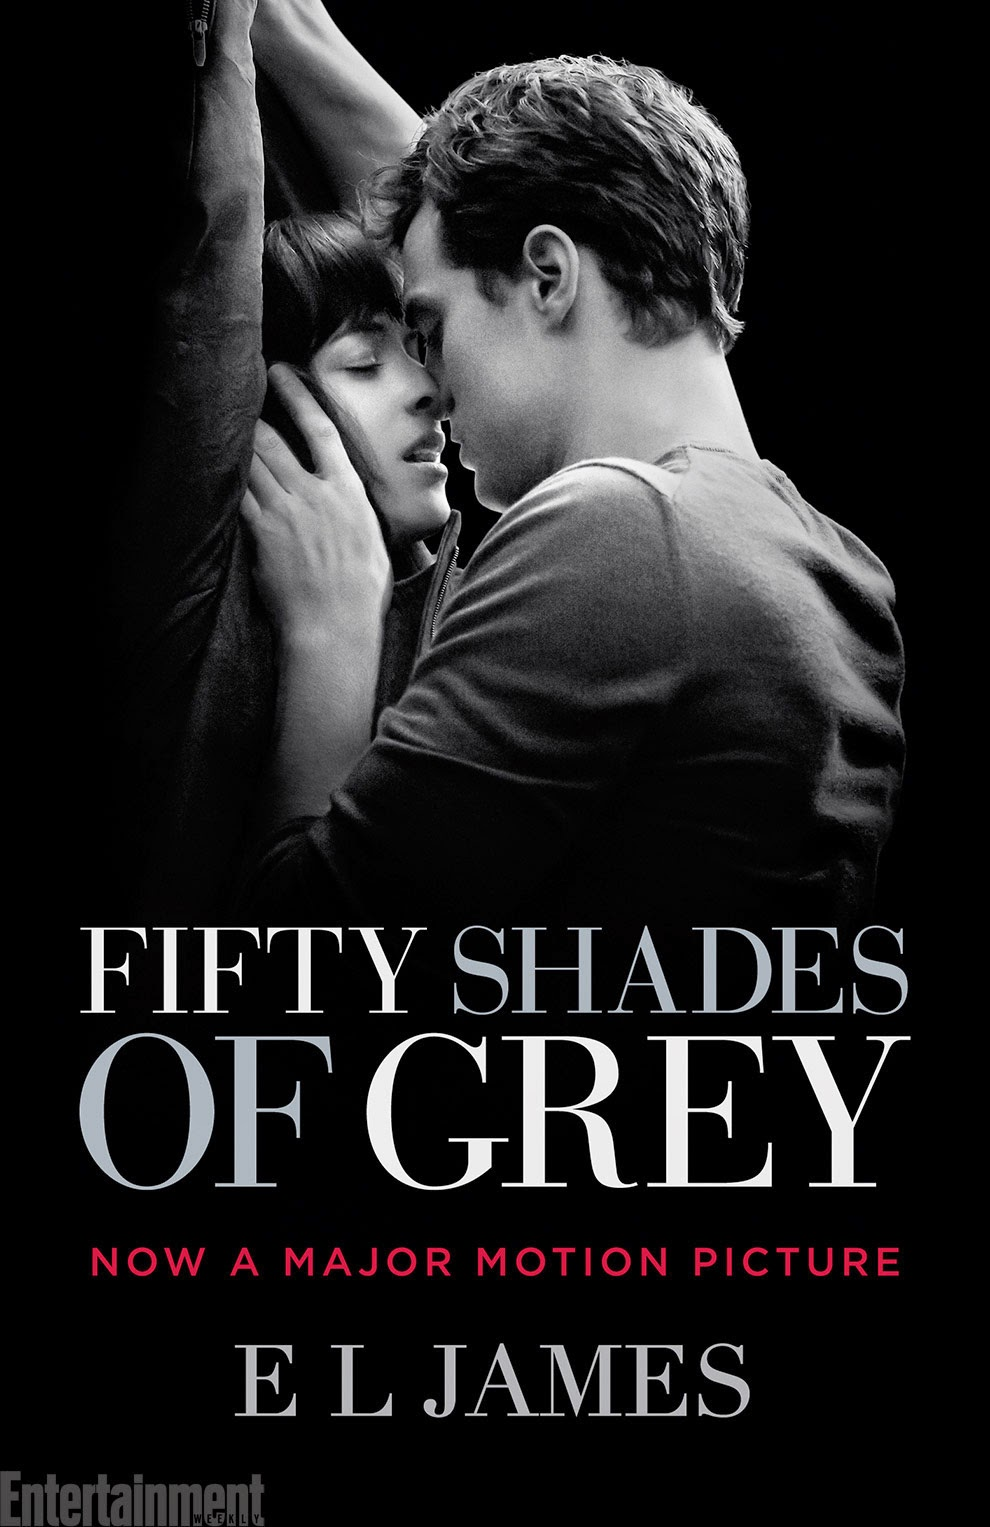 http://discover.halifaxpubliclibraries.ca/?q=title:fifty%20shades%20of%20grey